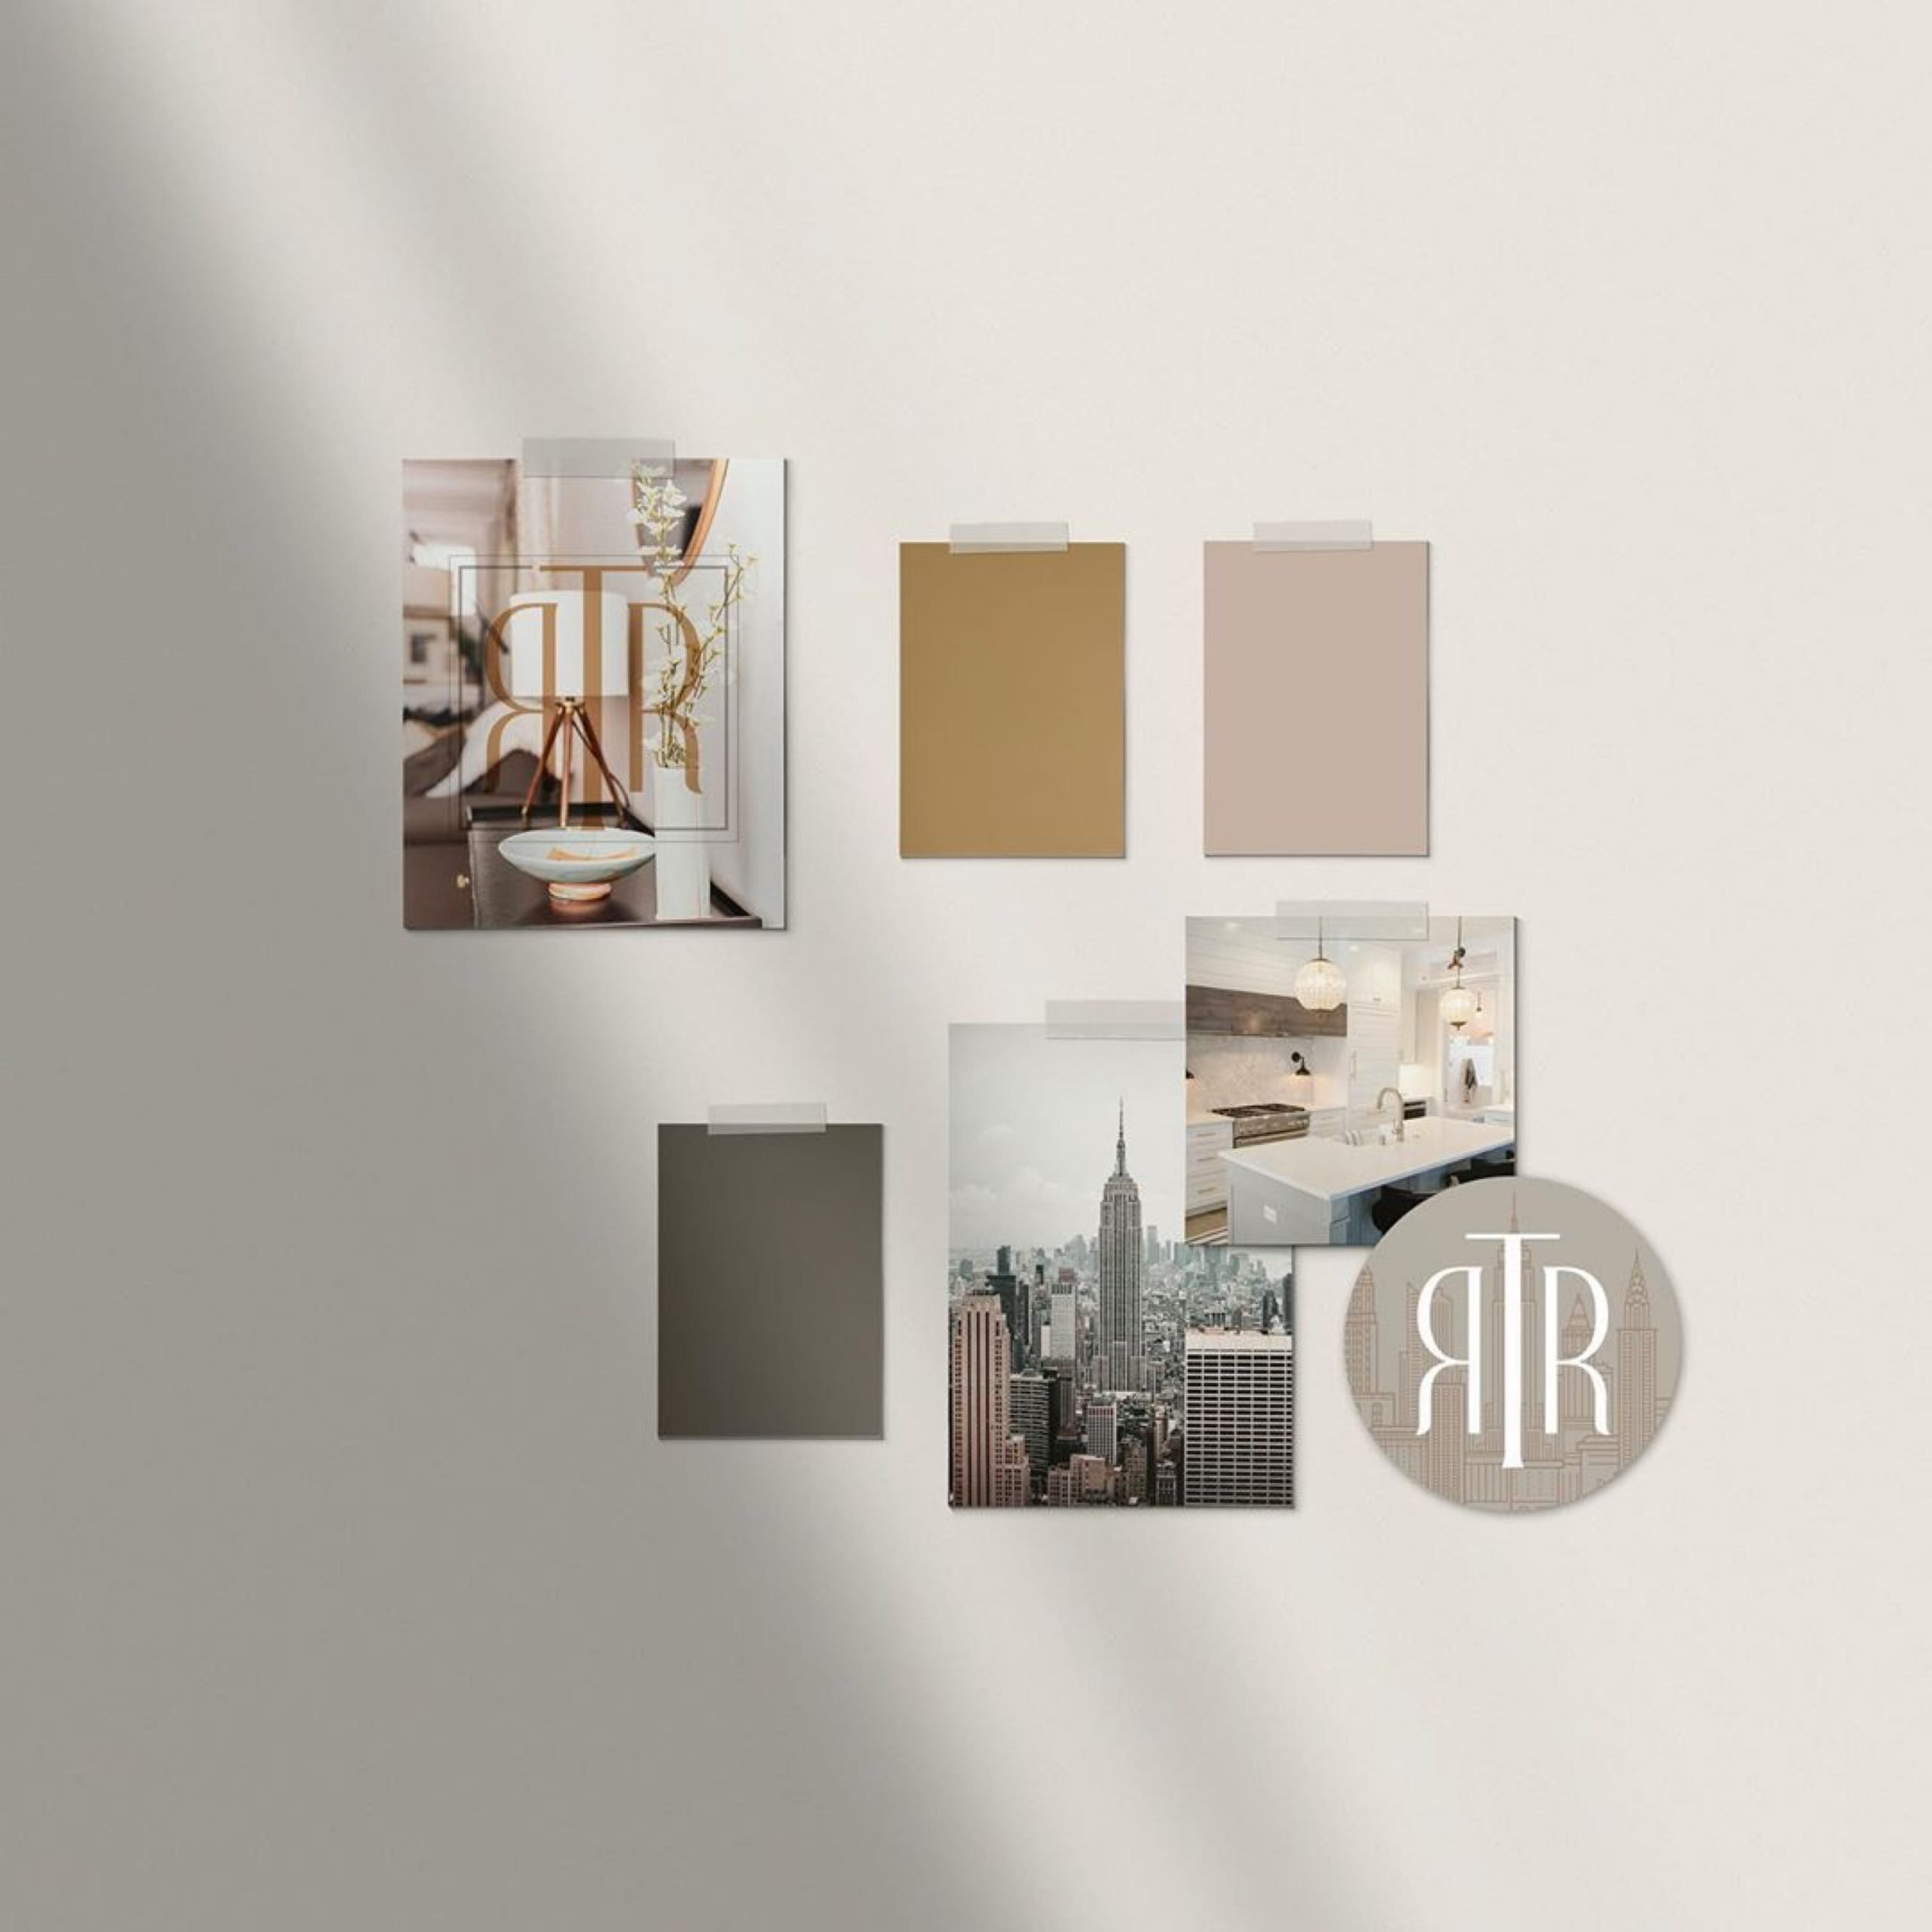 Timeless and elegant Logo design for Top Rated Realty by Fancy Girl Design Studio